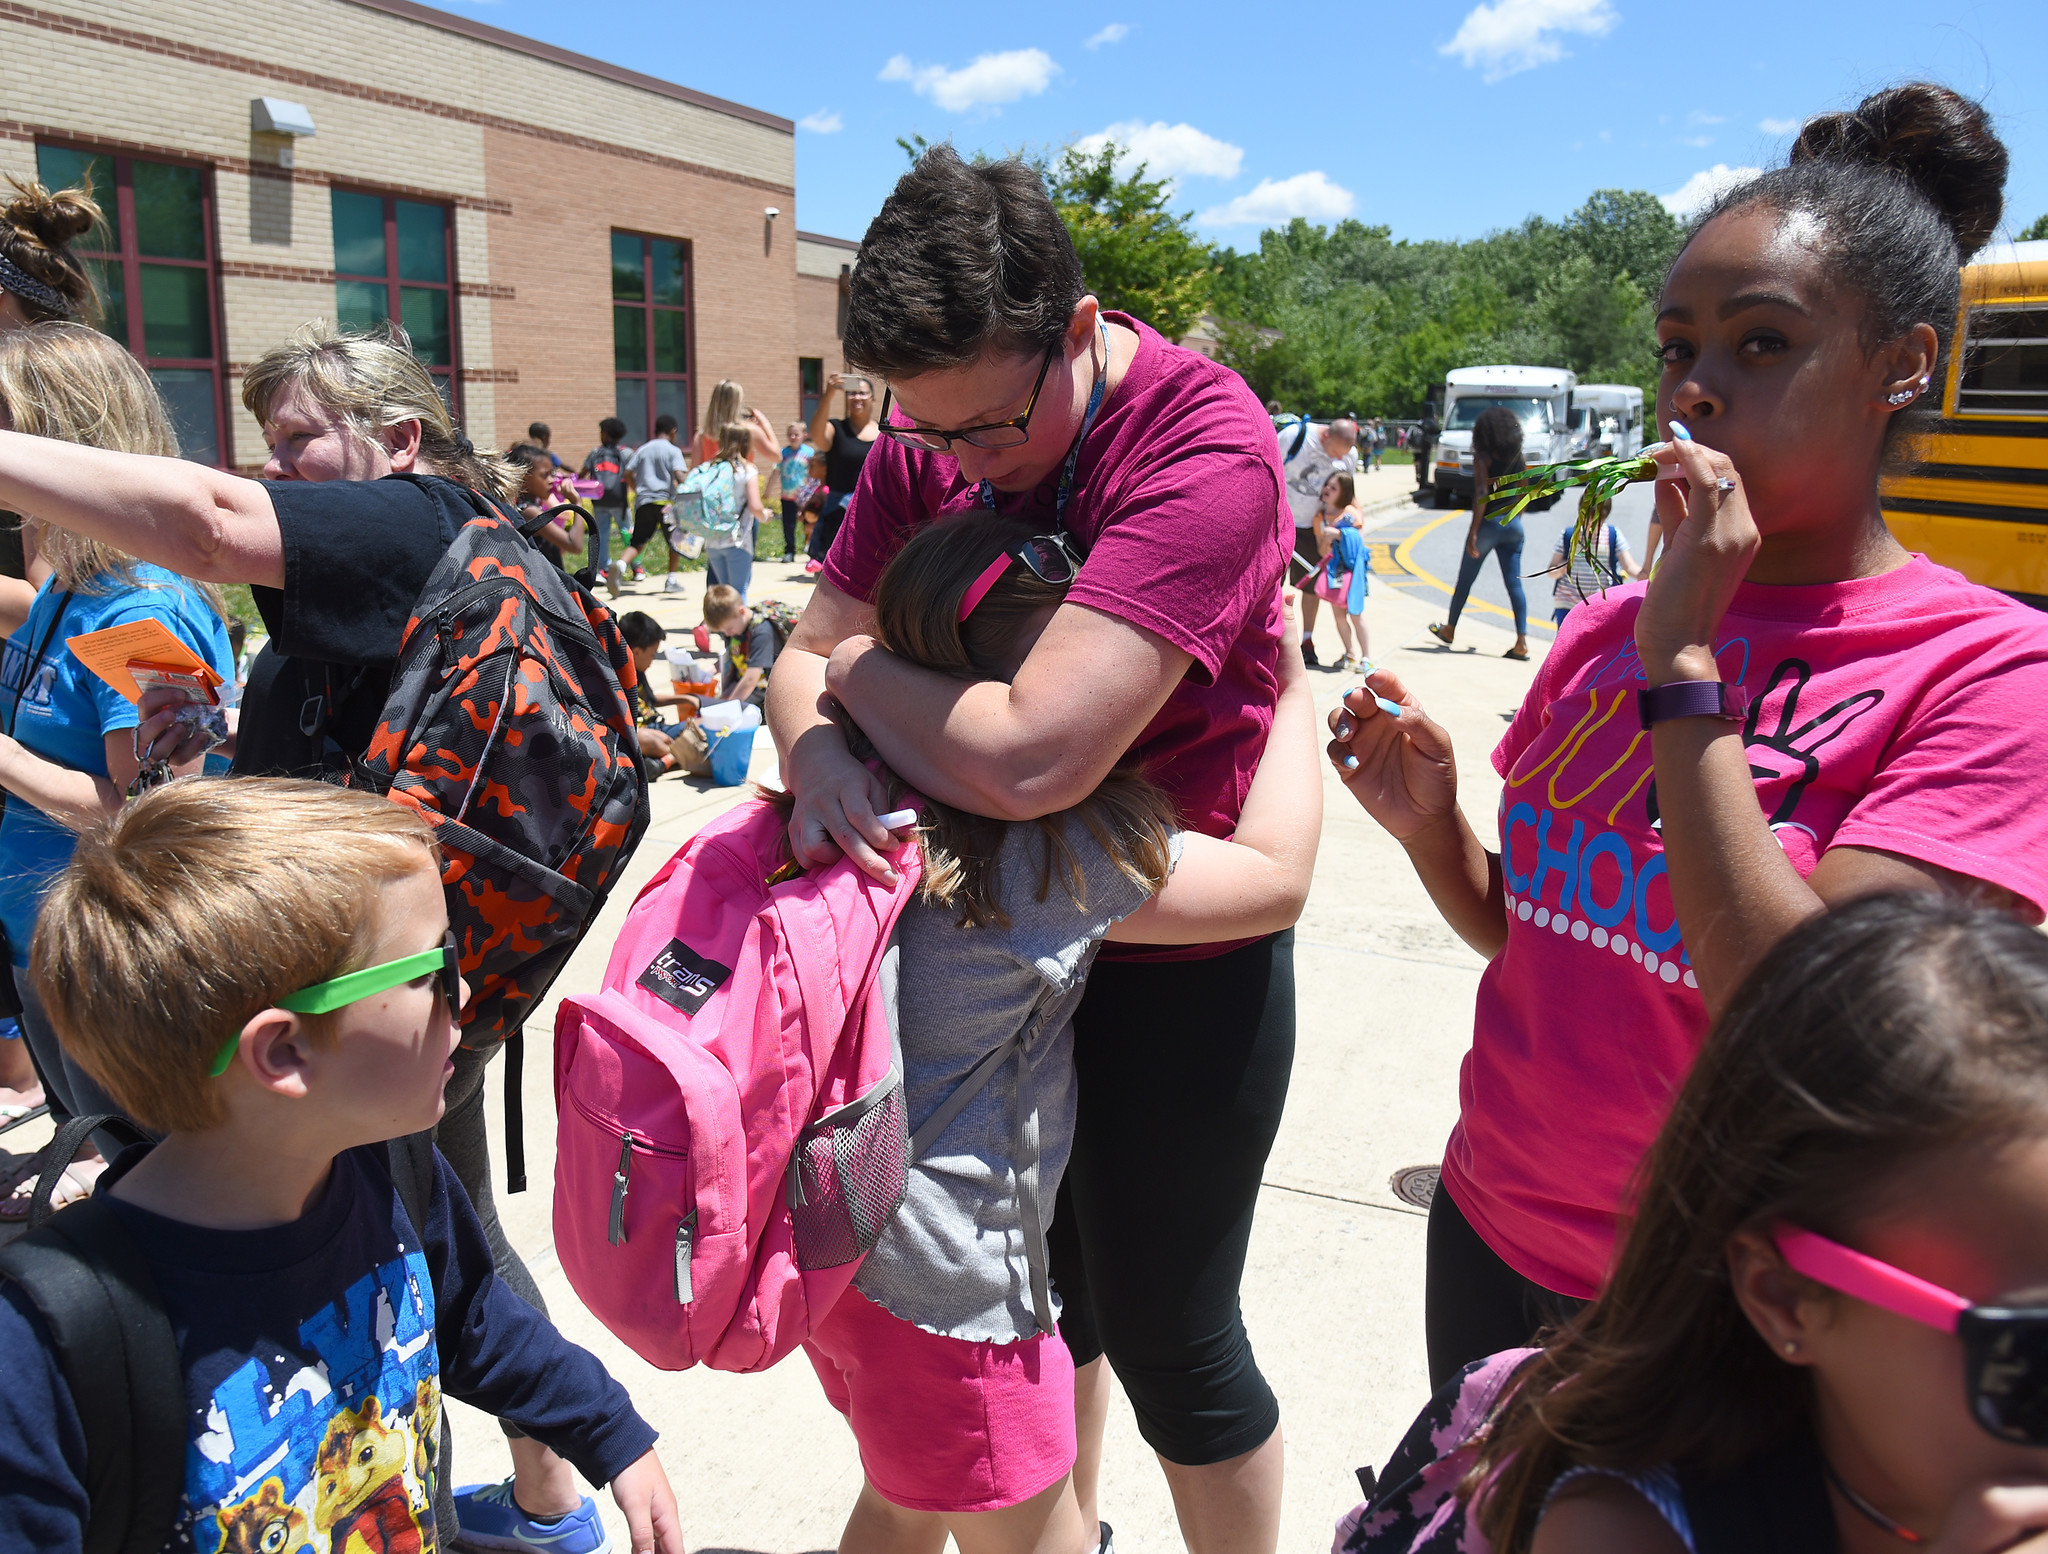 Last day of school at Nantucket Elementary